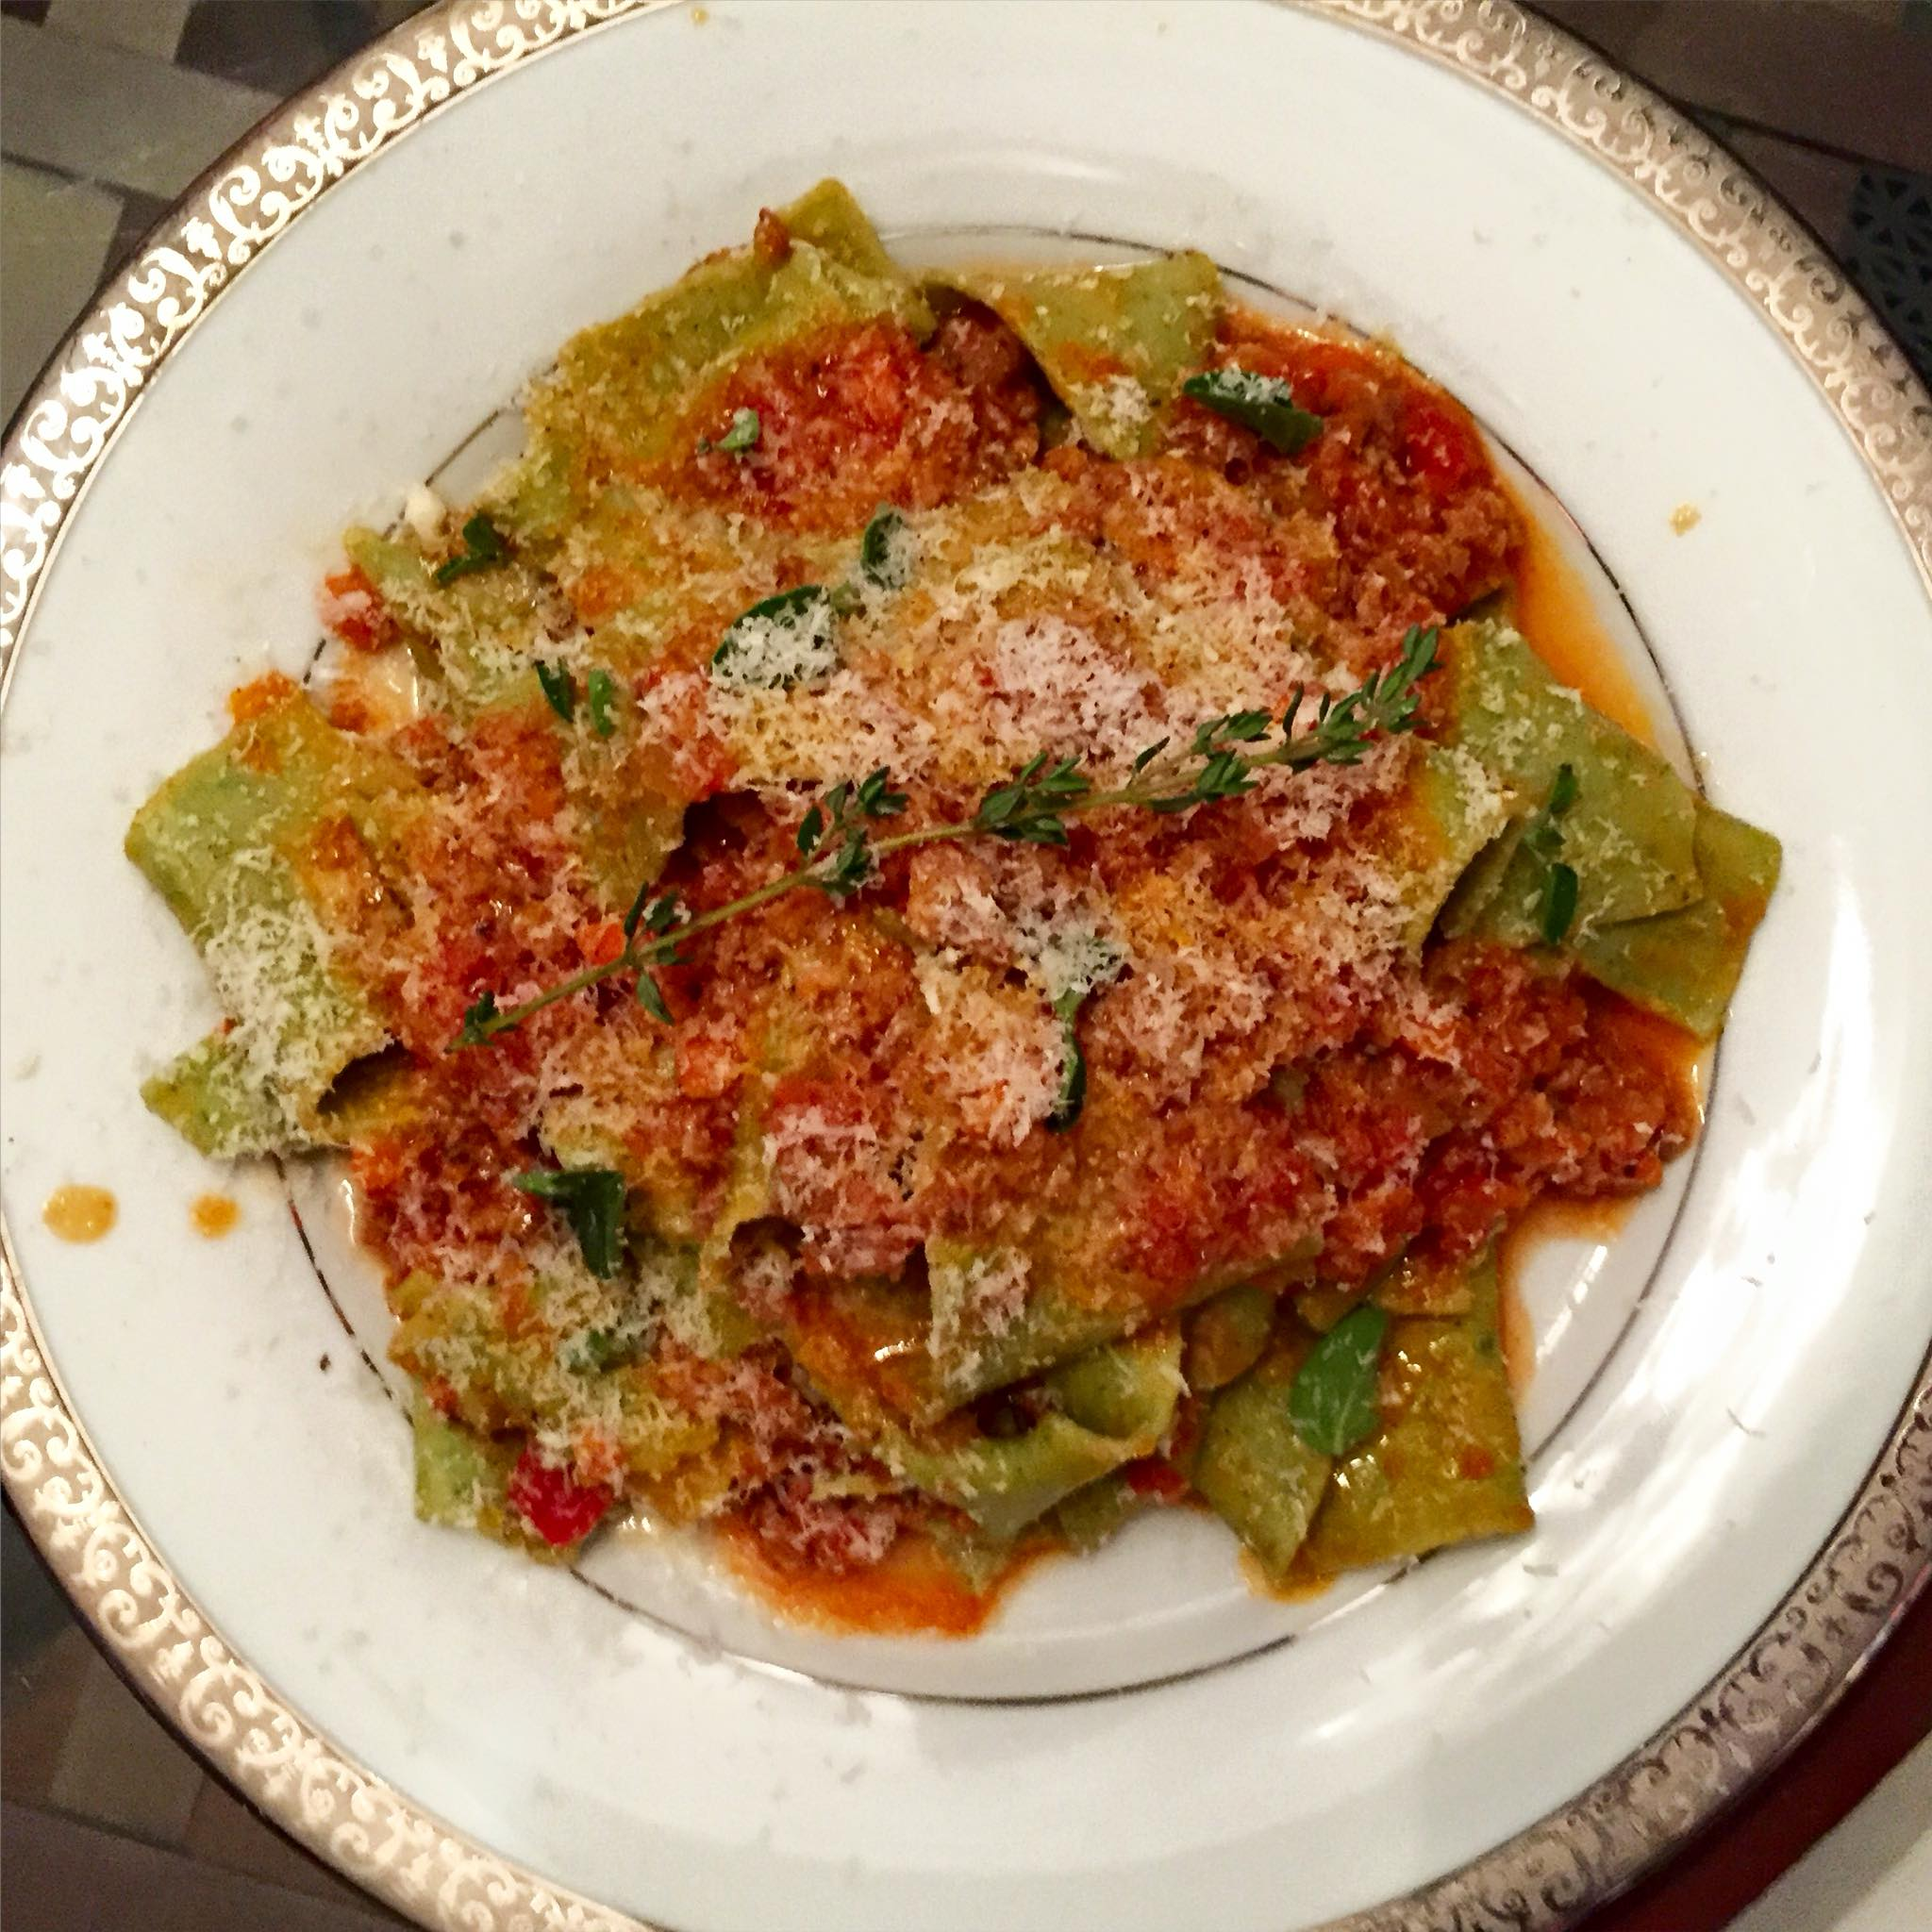 Handmade Spinach Pappardelle in Sage Sausage Sauce